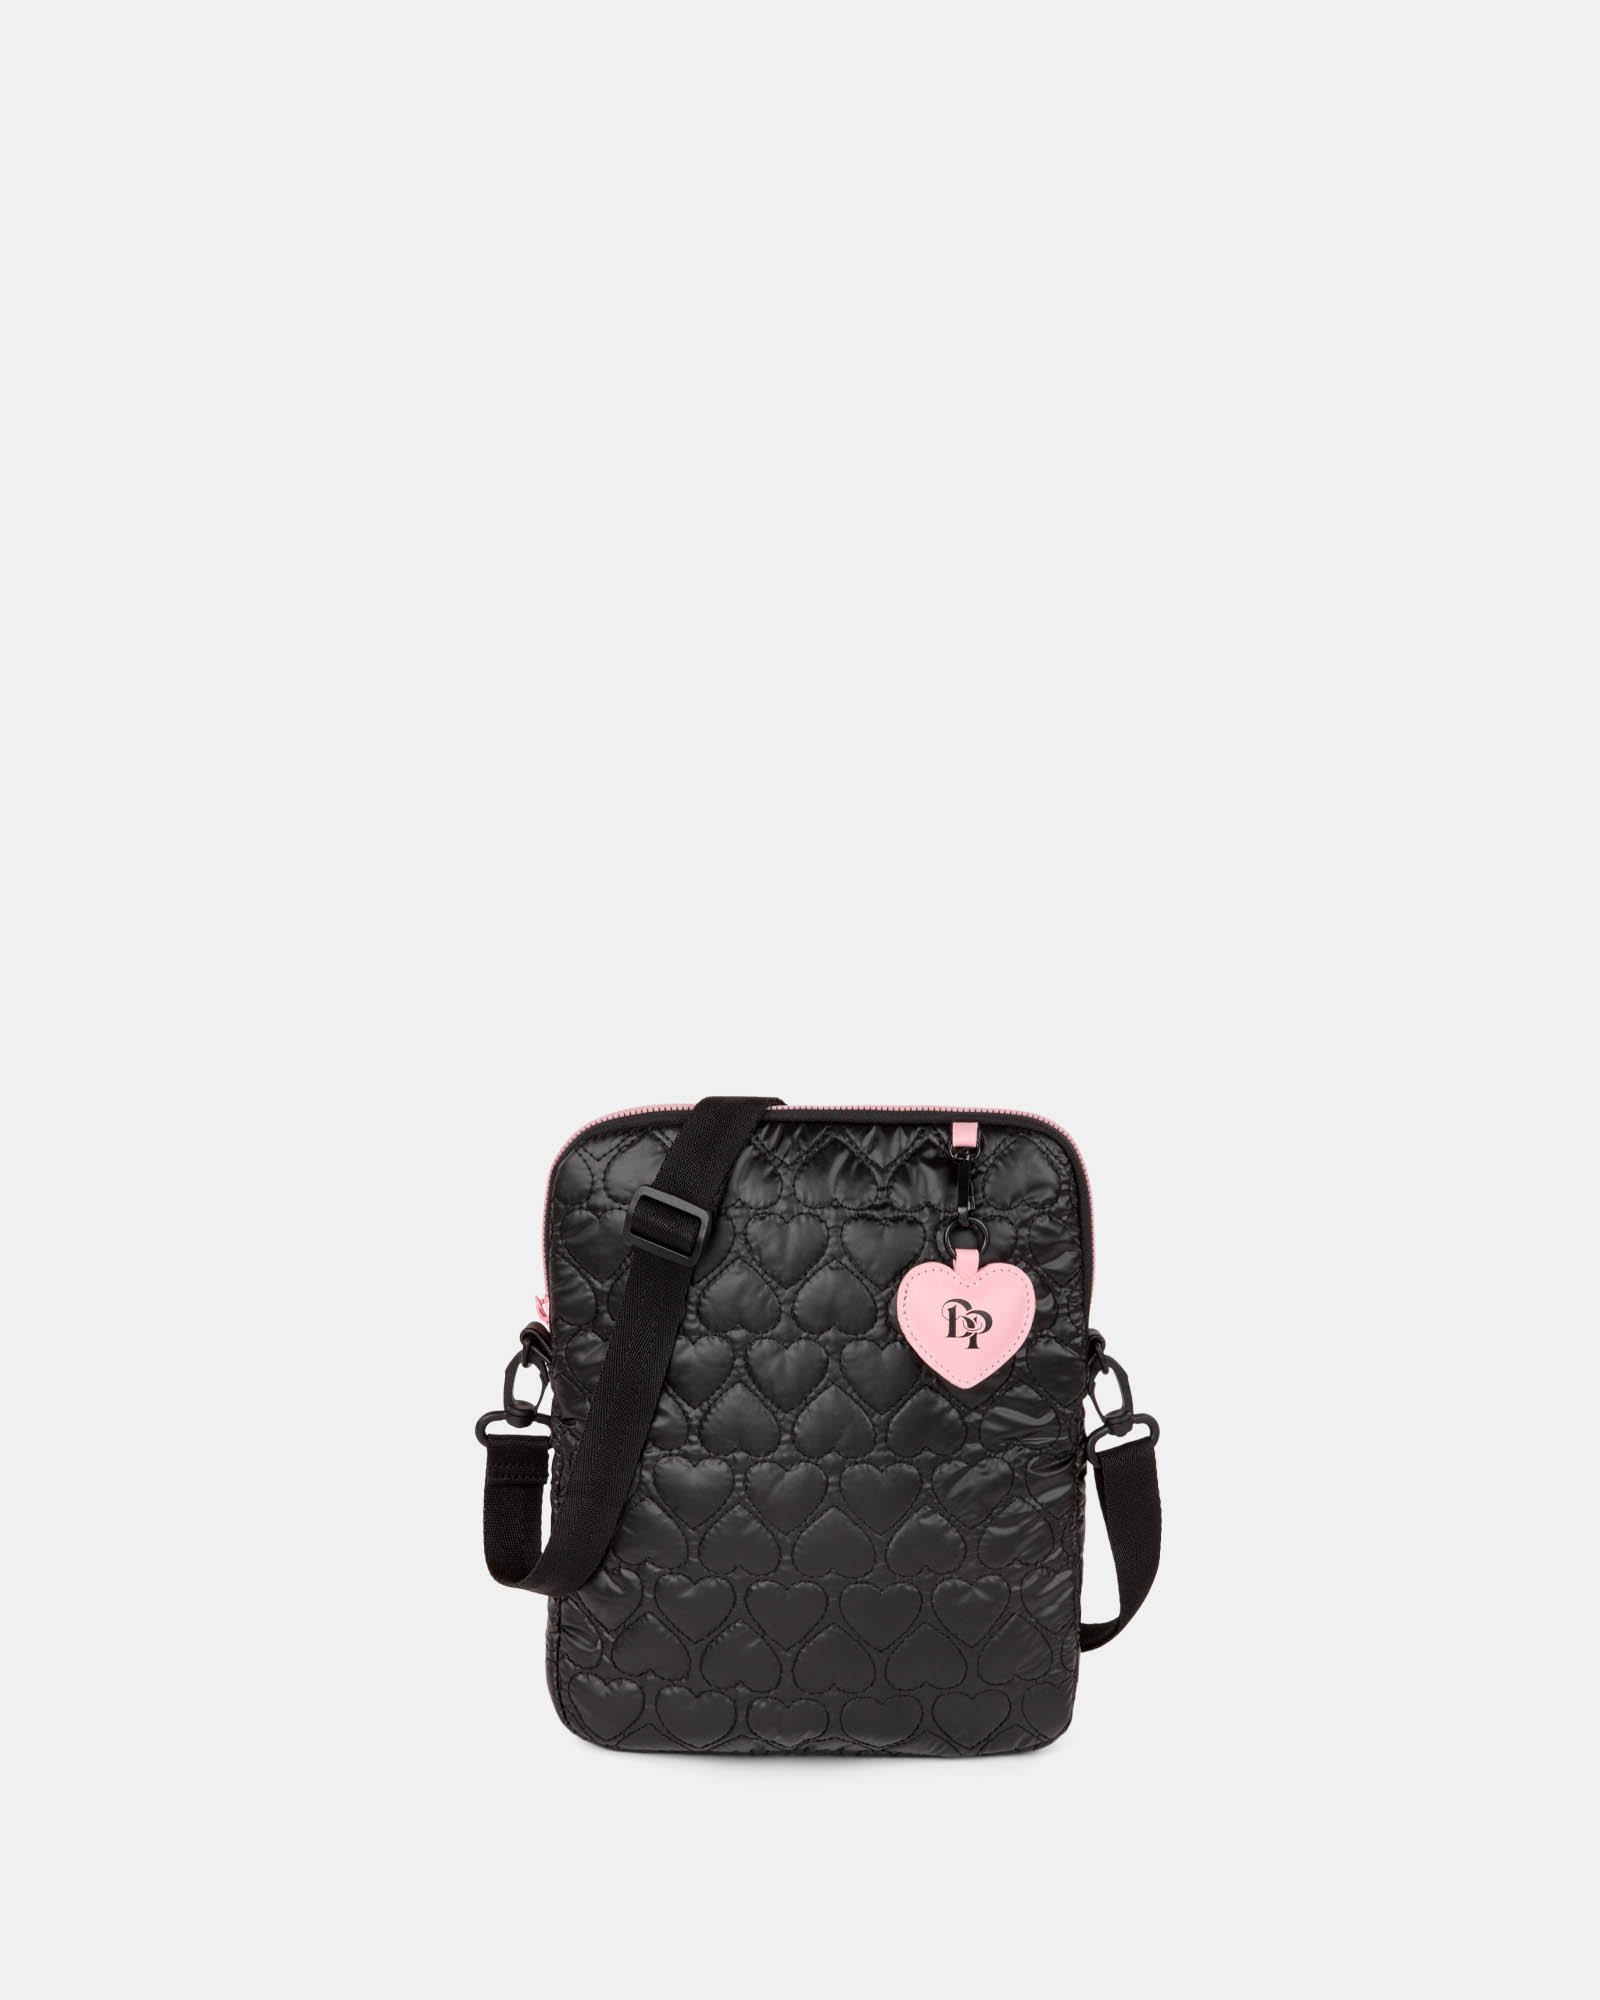 BLACKPINK - Be Still My Heart Collection - Crossbody bag with Padded main compartment with a top zippered opening, ideal to store your tablet- black - BLACKPINK - Zoom